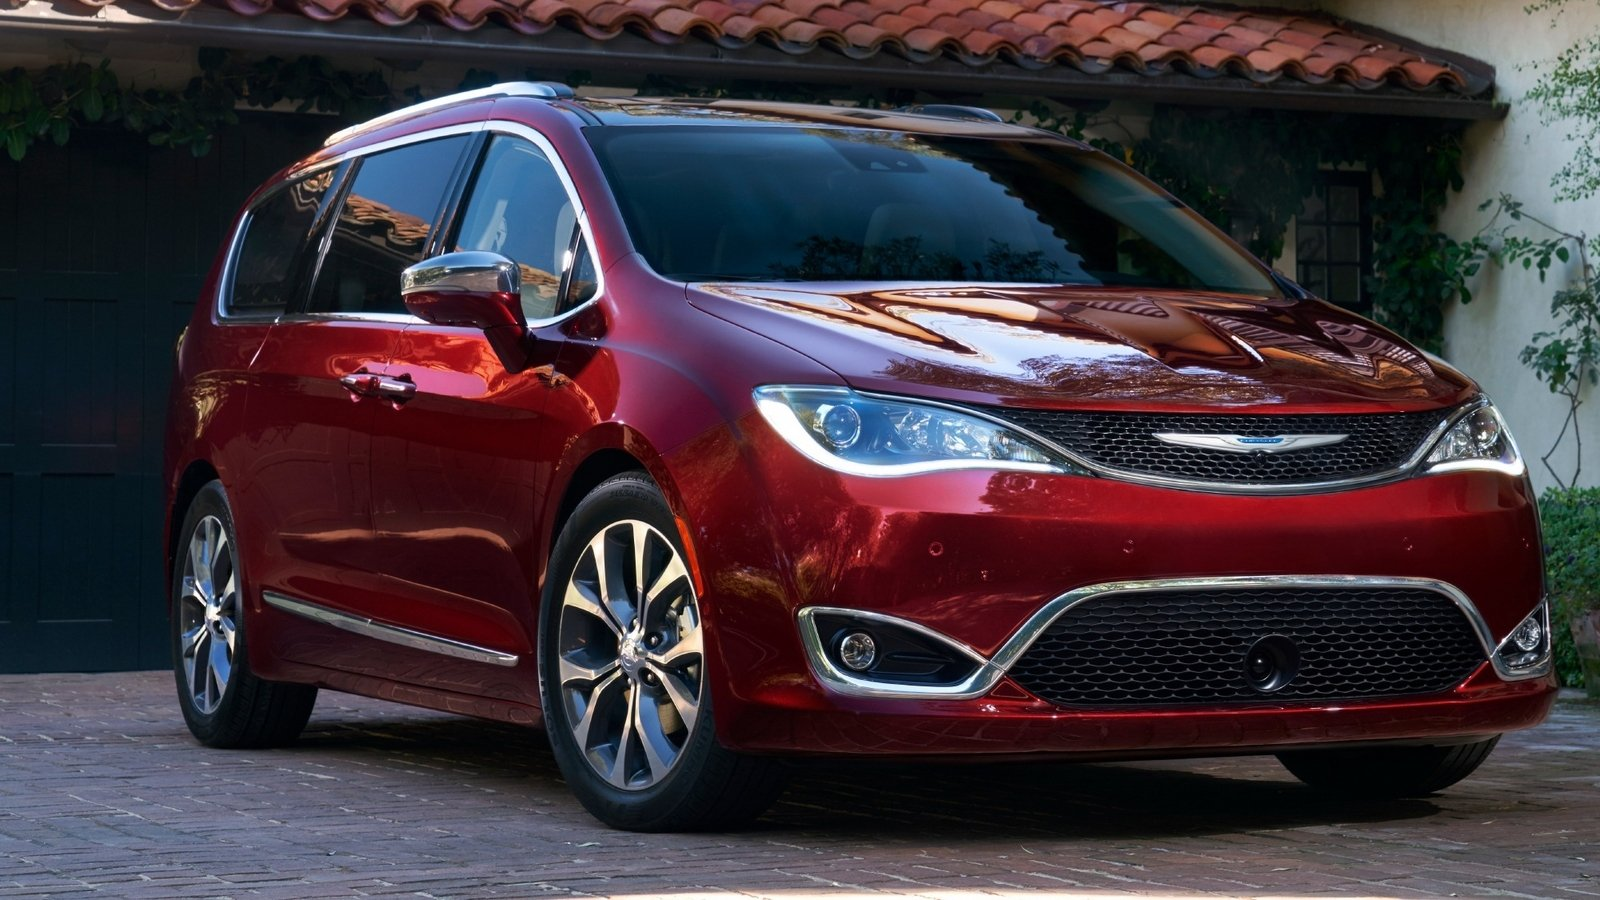 2017 chrysler pacifica car news and information. Black Bedroom Furniture Sets. Home Design Ideas